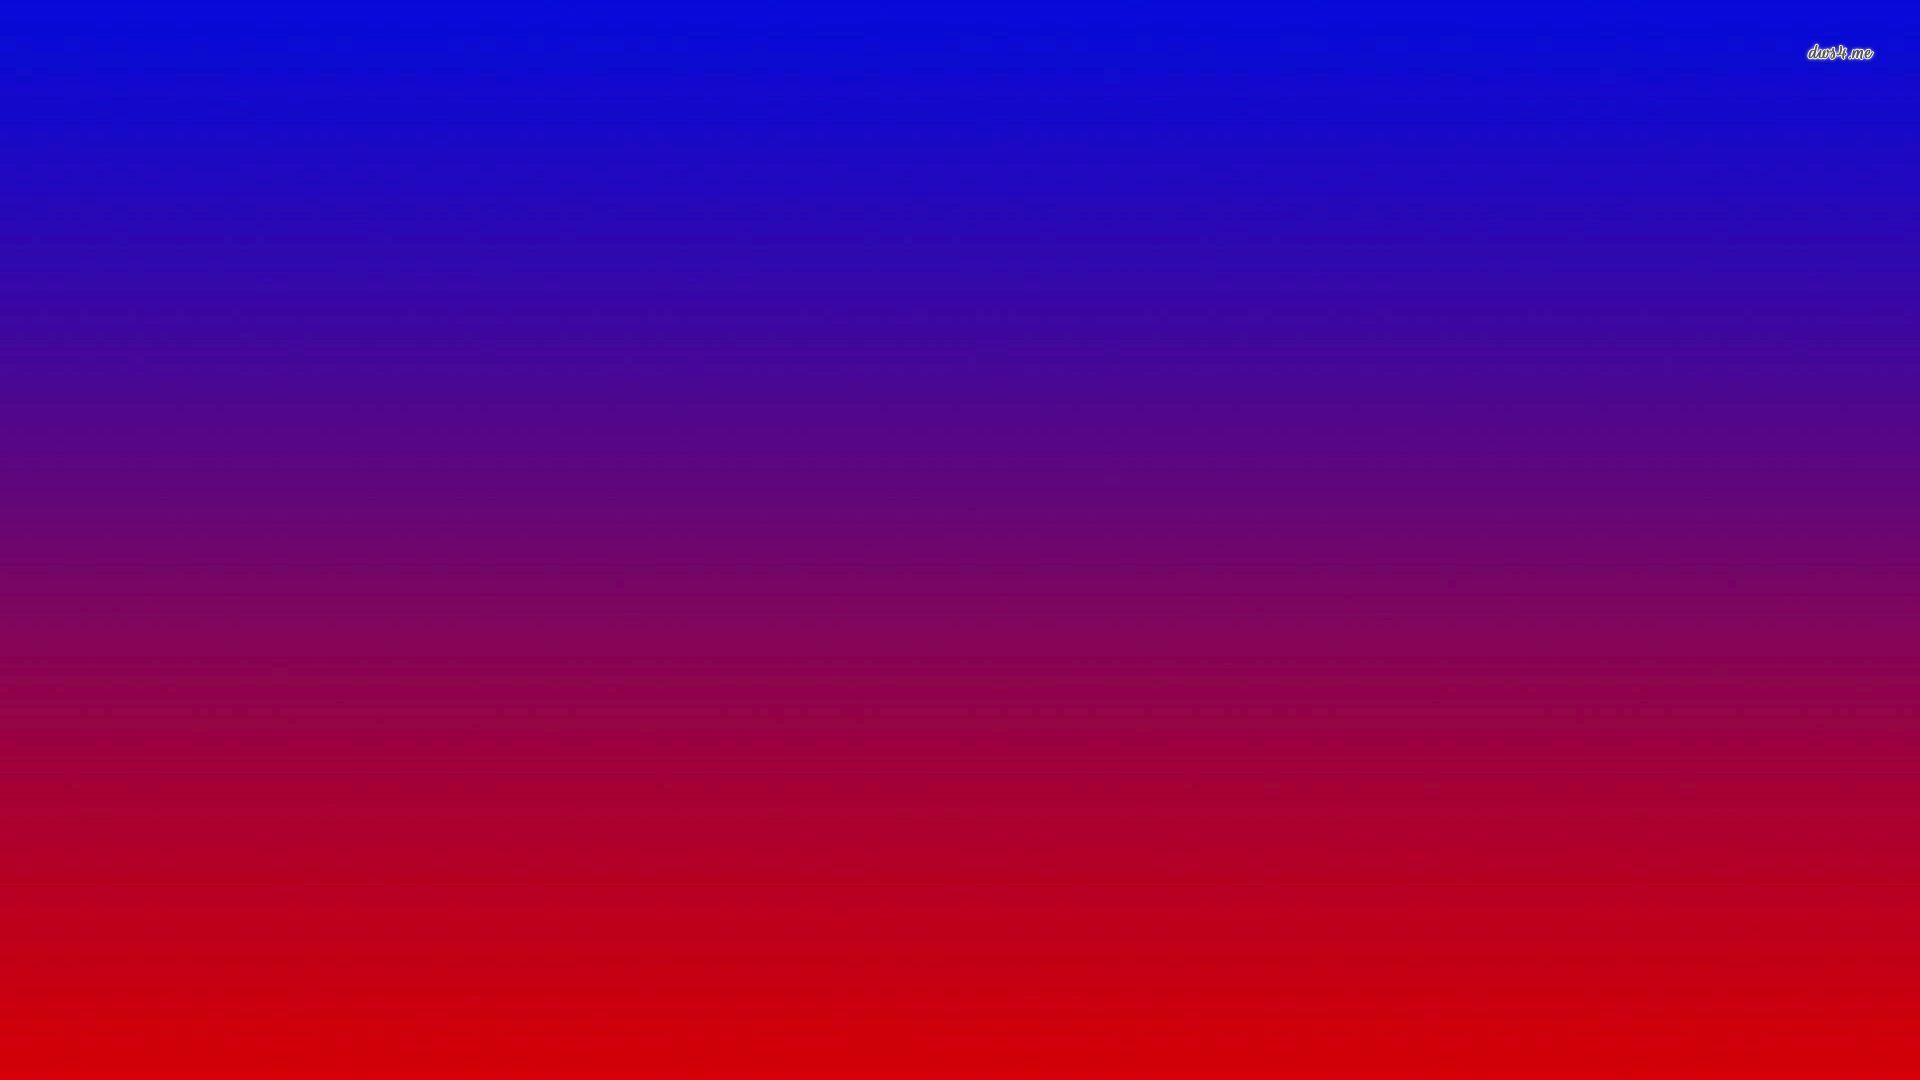 Red And Blue PC Wallpaper HD